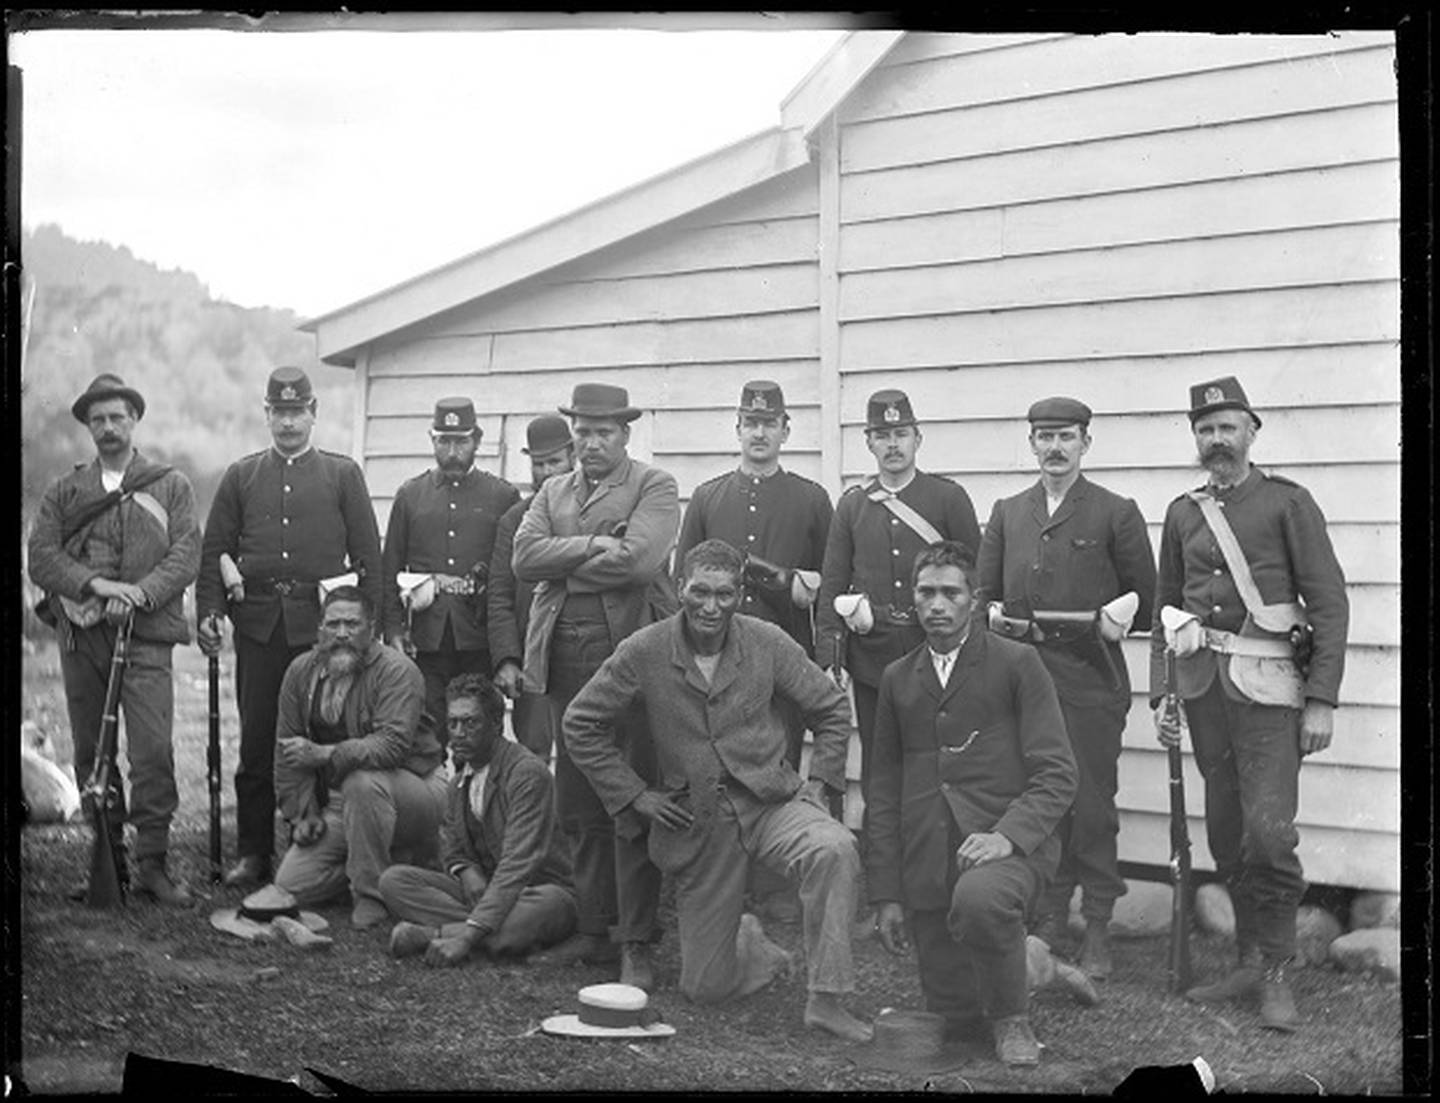 C.P. Dawes: Māori dog-tax resisters, including leader Hone Toia (centre, standing), following their surrender at Waima in Northland in 1898. Auckland Libraries Heritage Collection